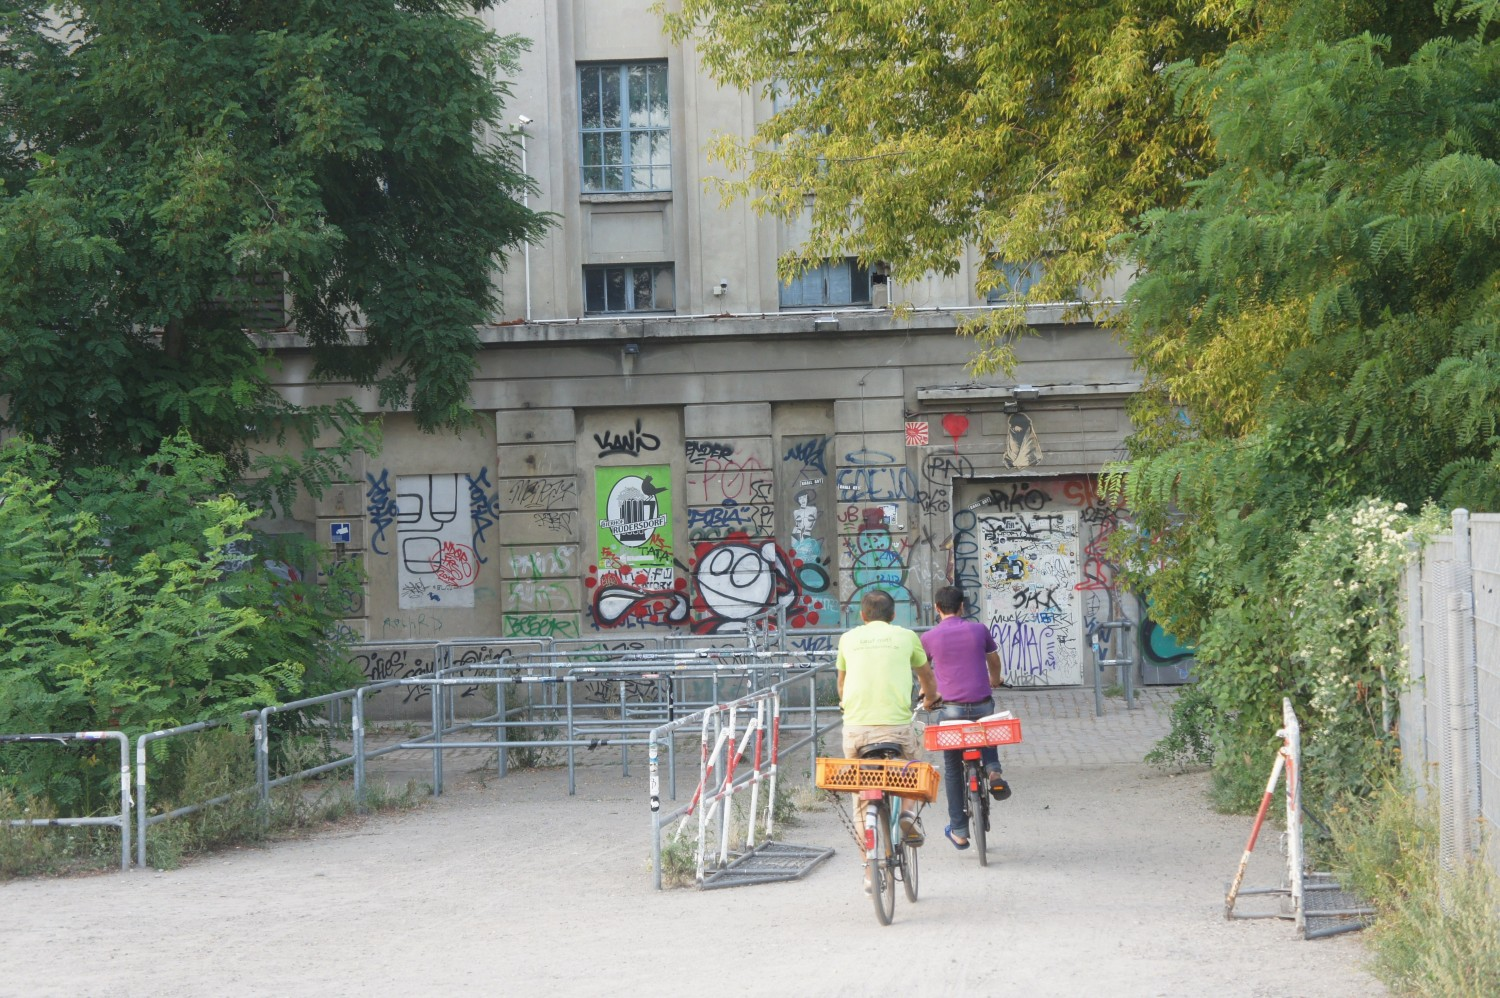 Don't judge a book by its cover; this is actually the entrance to one of the world's most famous techno clubs; Berghain